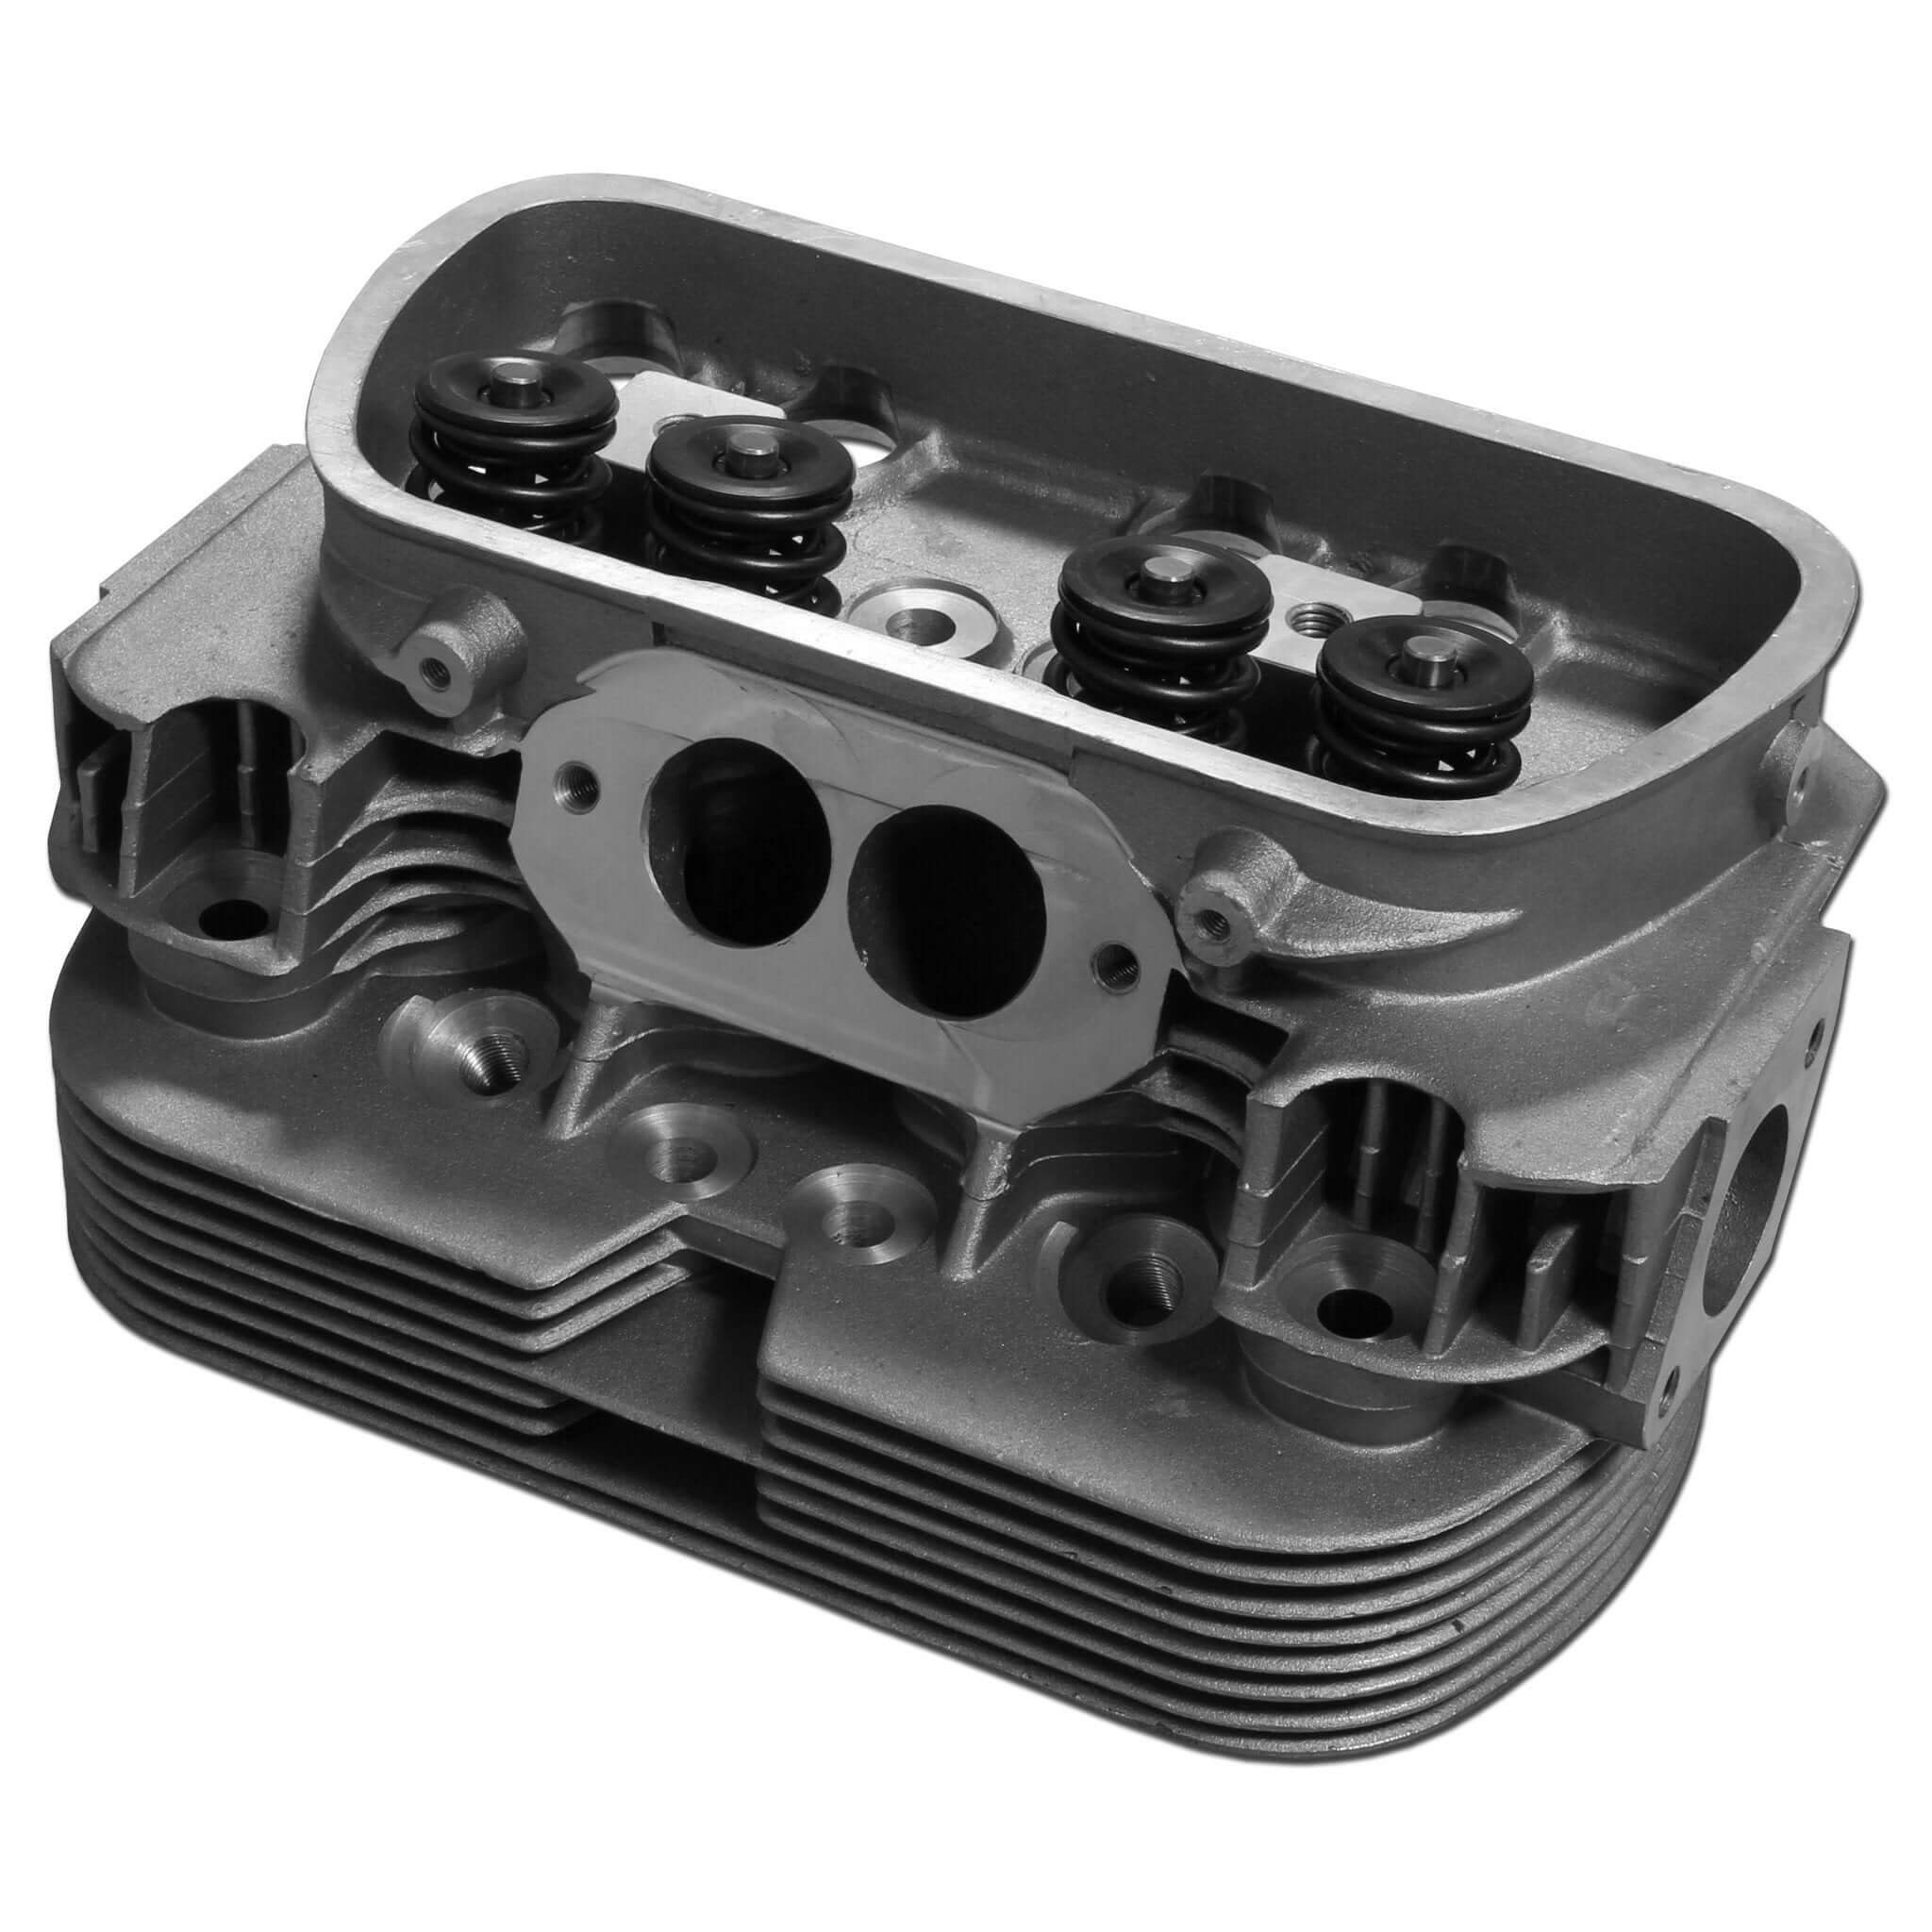 Type 1/2/3 Cylinder Heads And Components - LJ Air-Cooled Engines